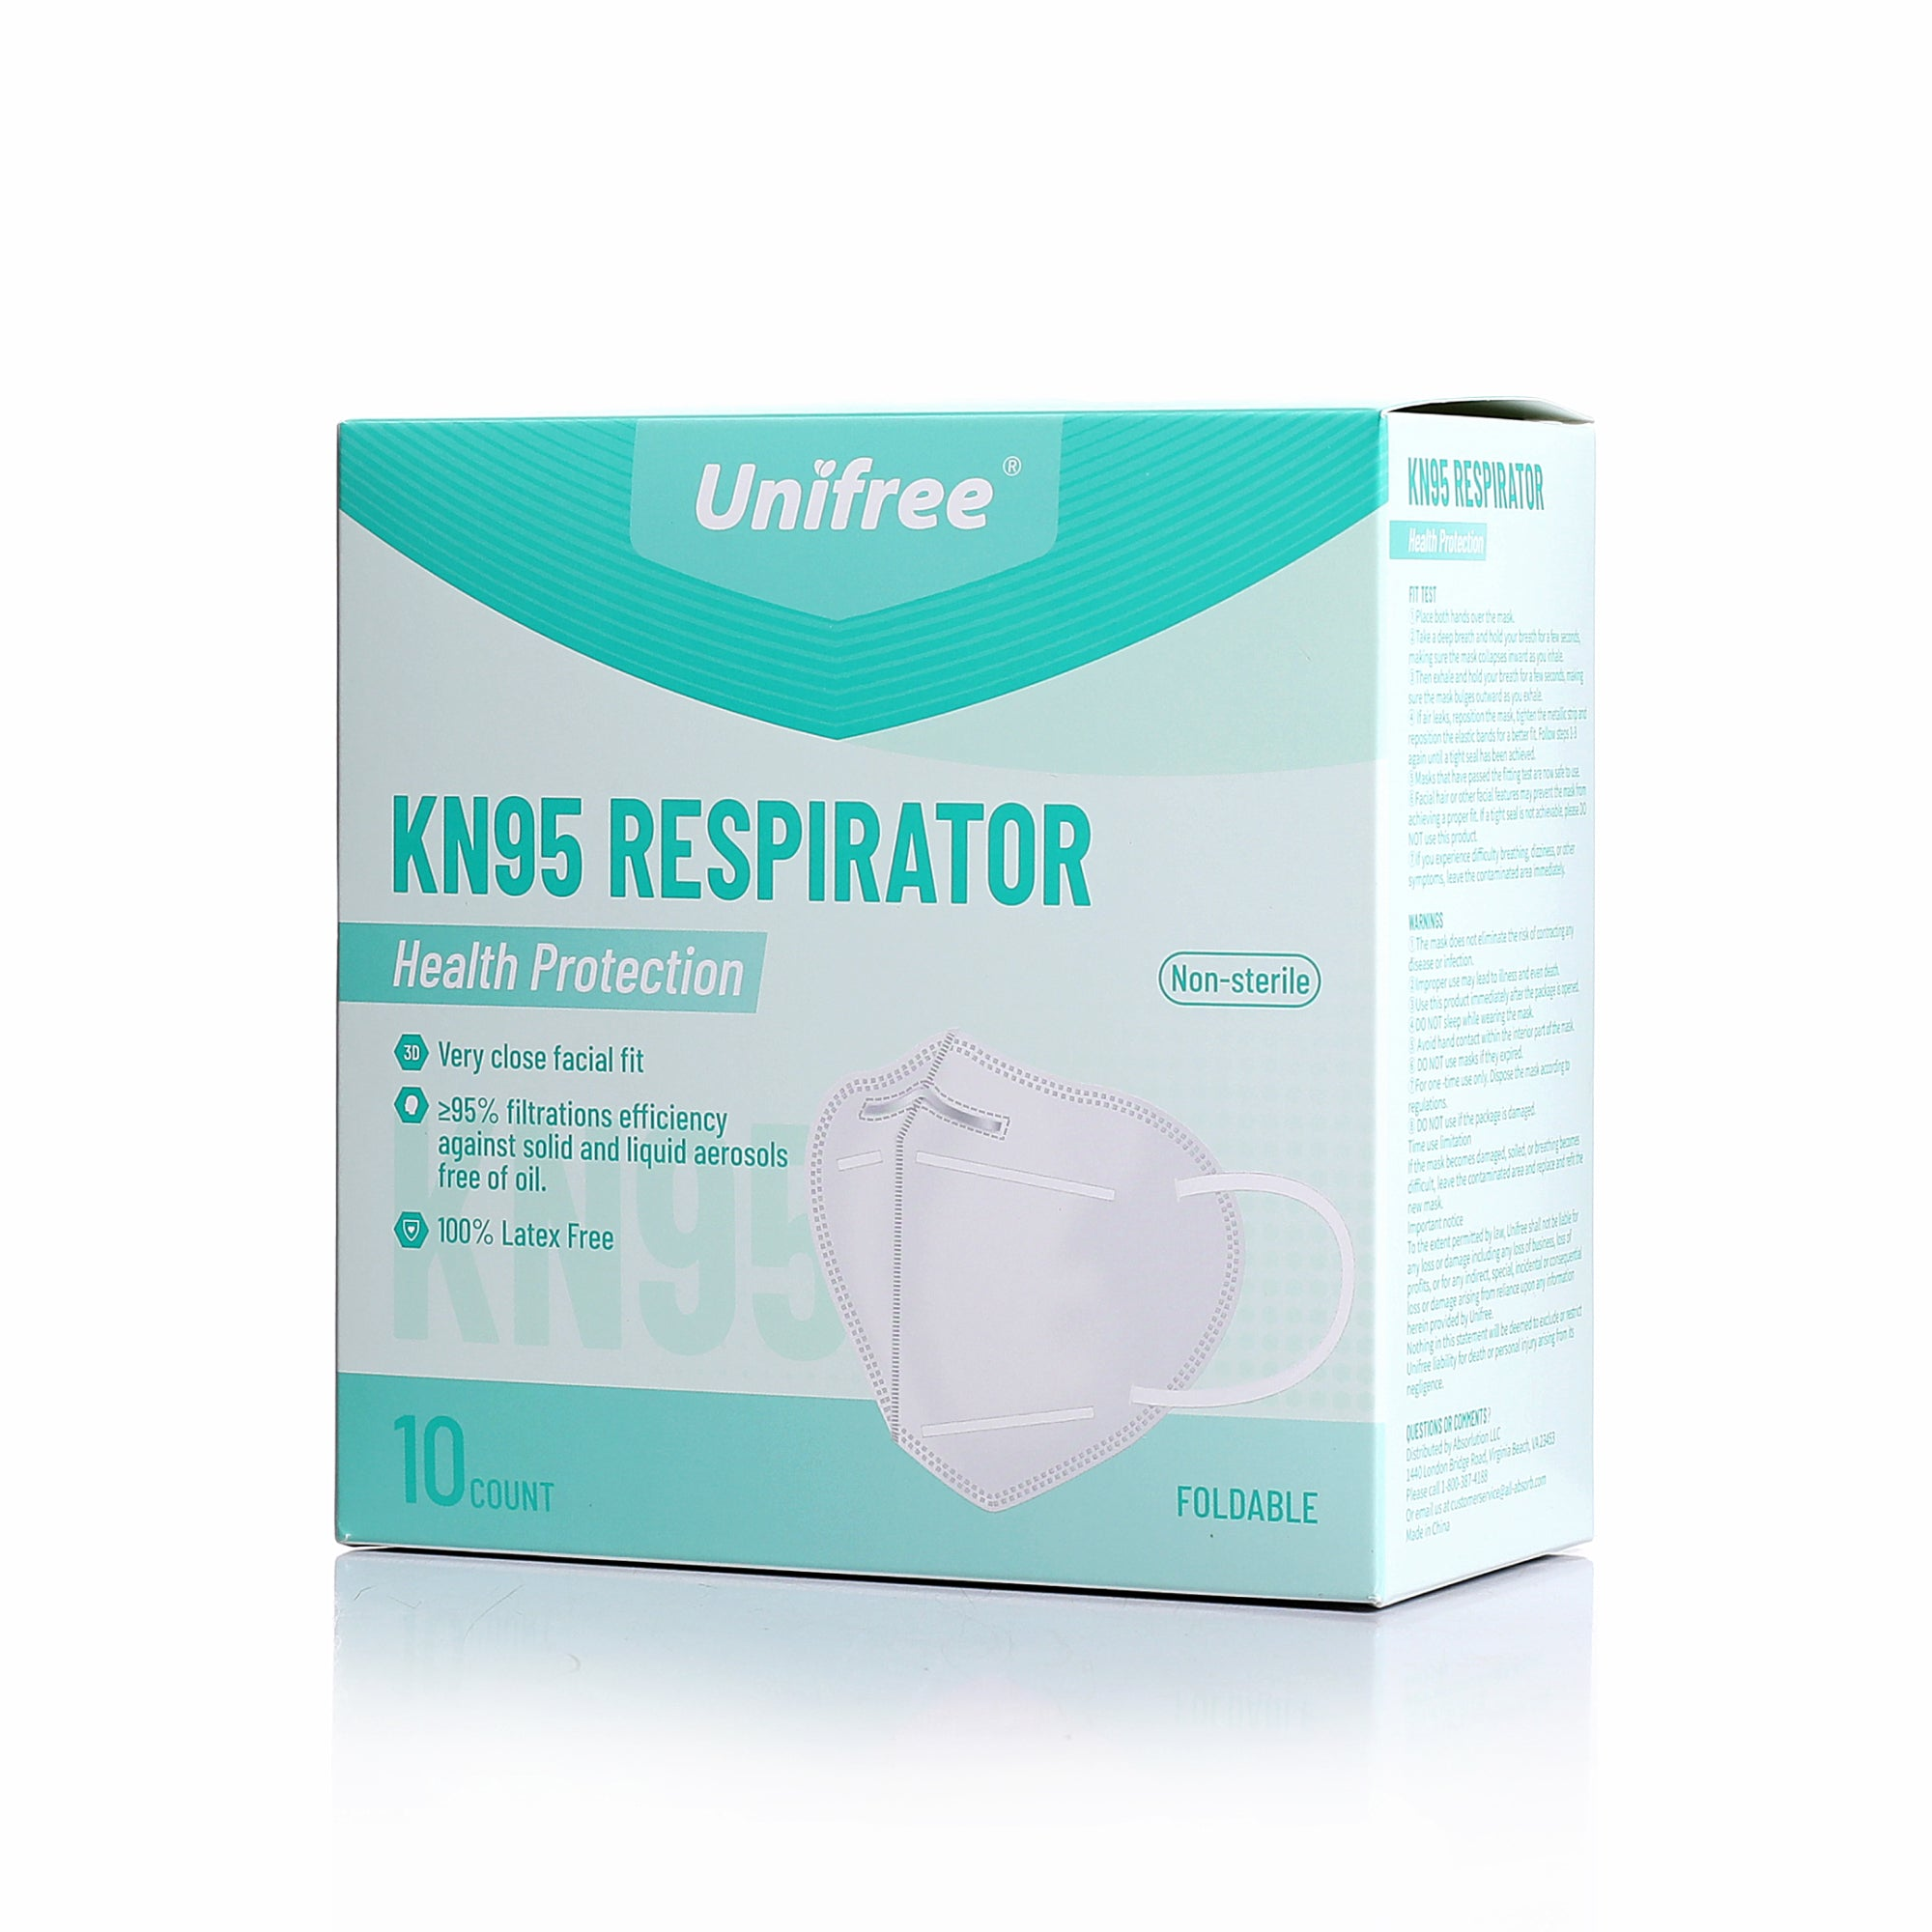 Unifree® KN95 Respirator (10 Count) - Trusted Brand - GETXGO